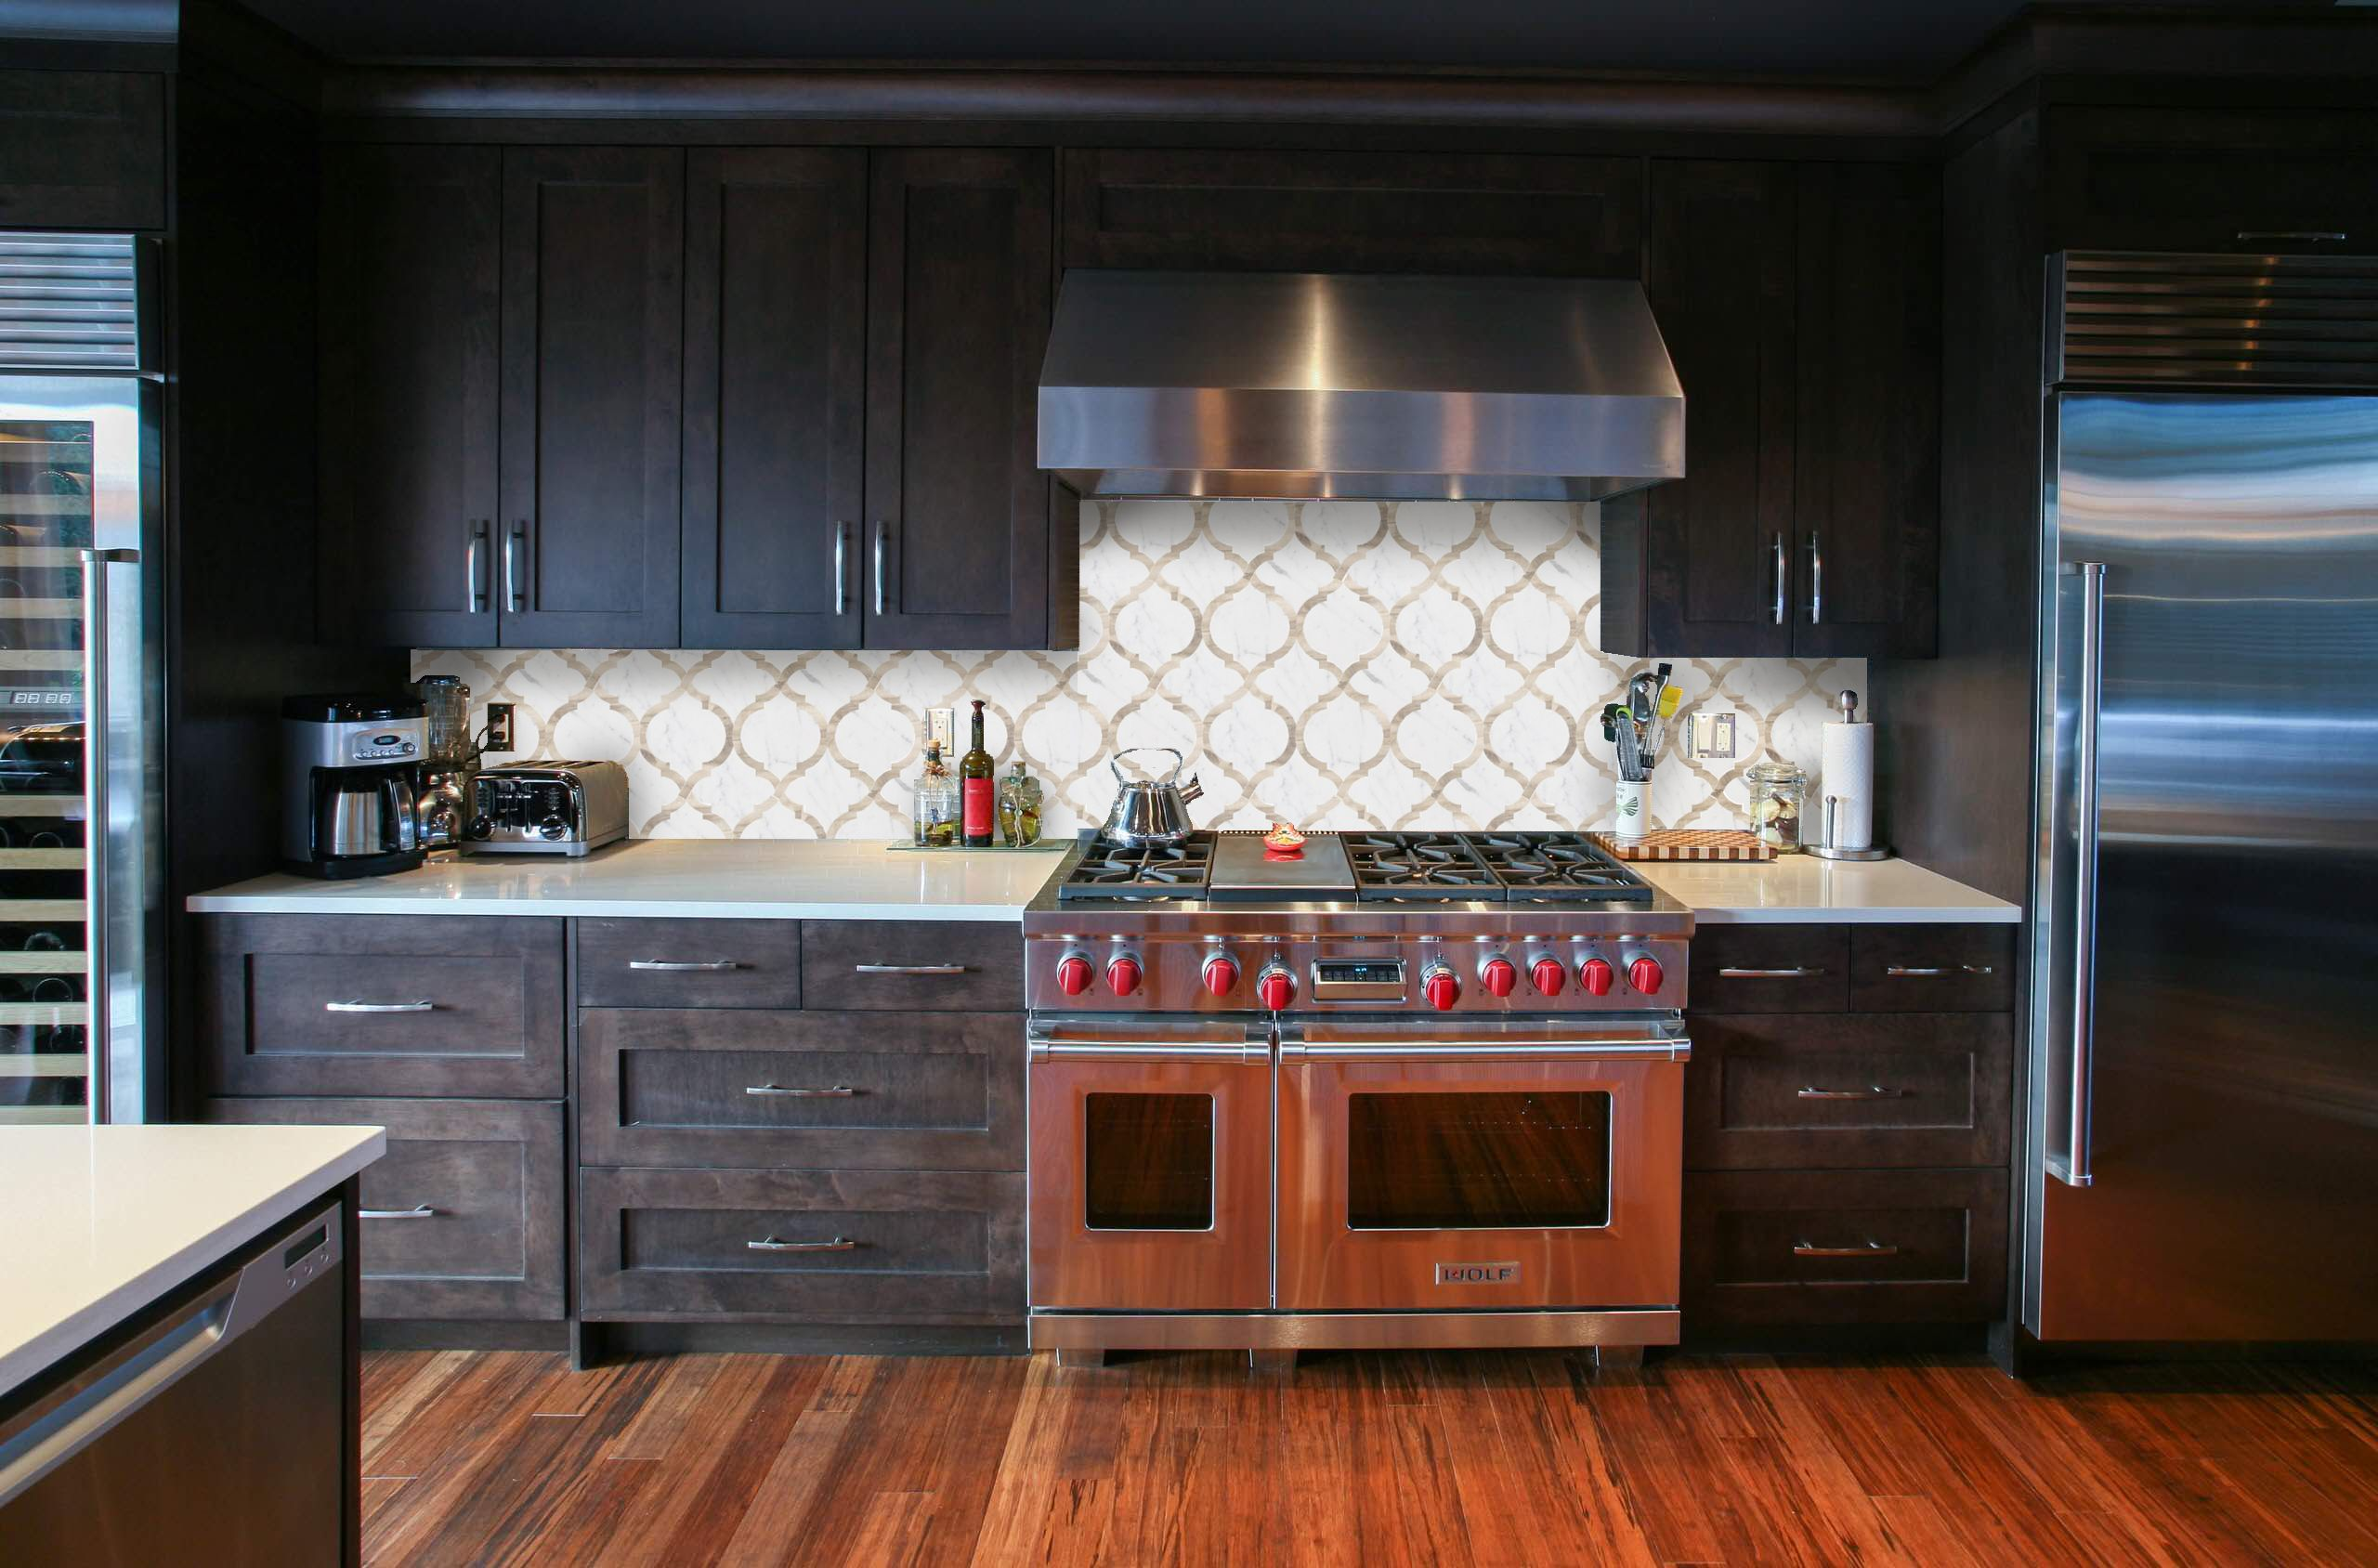 Designer Kitchens Dark Cabinets Arabesque Tile Designkitchen Backsplashwaterjetwater Jet